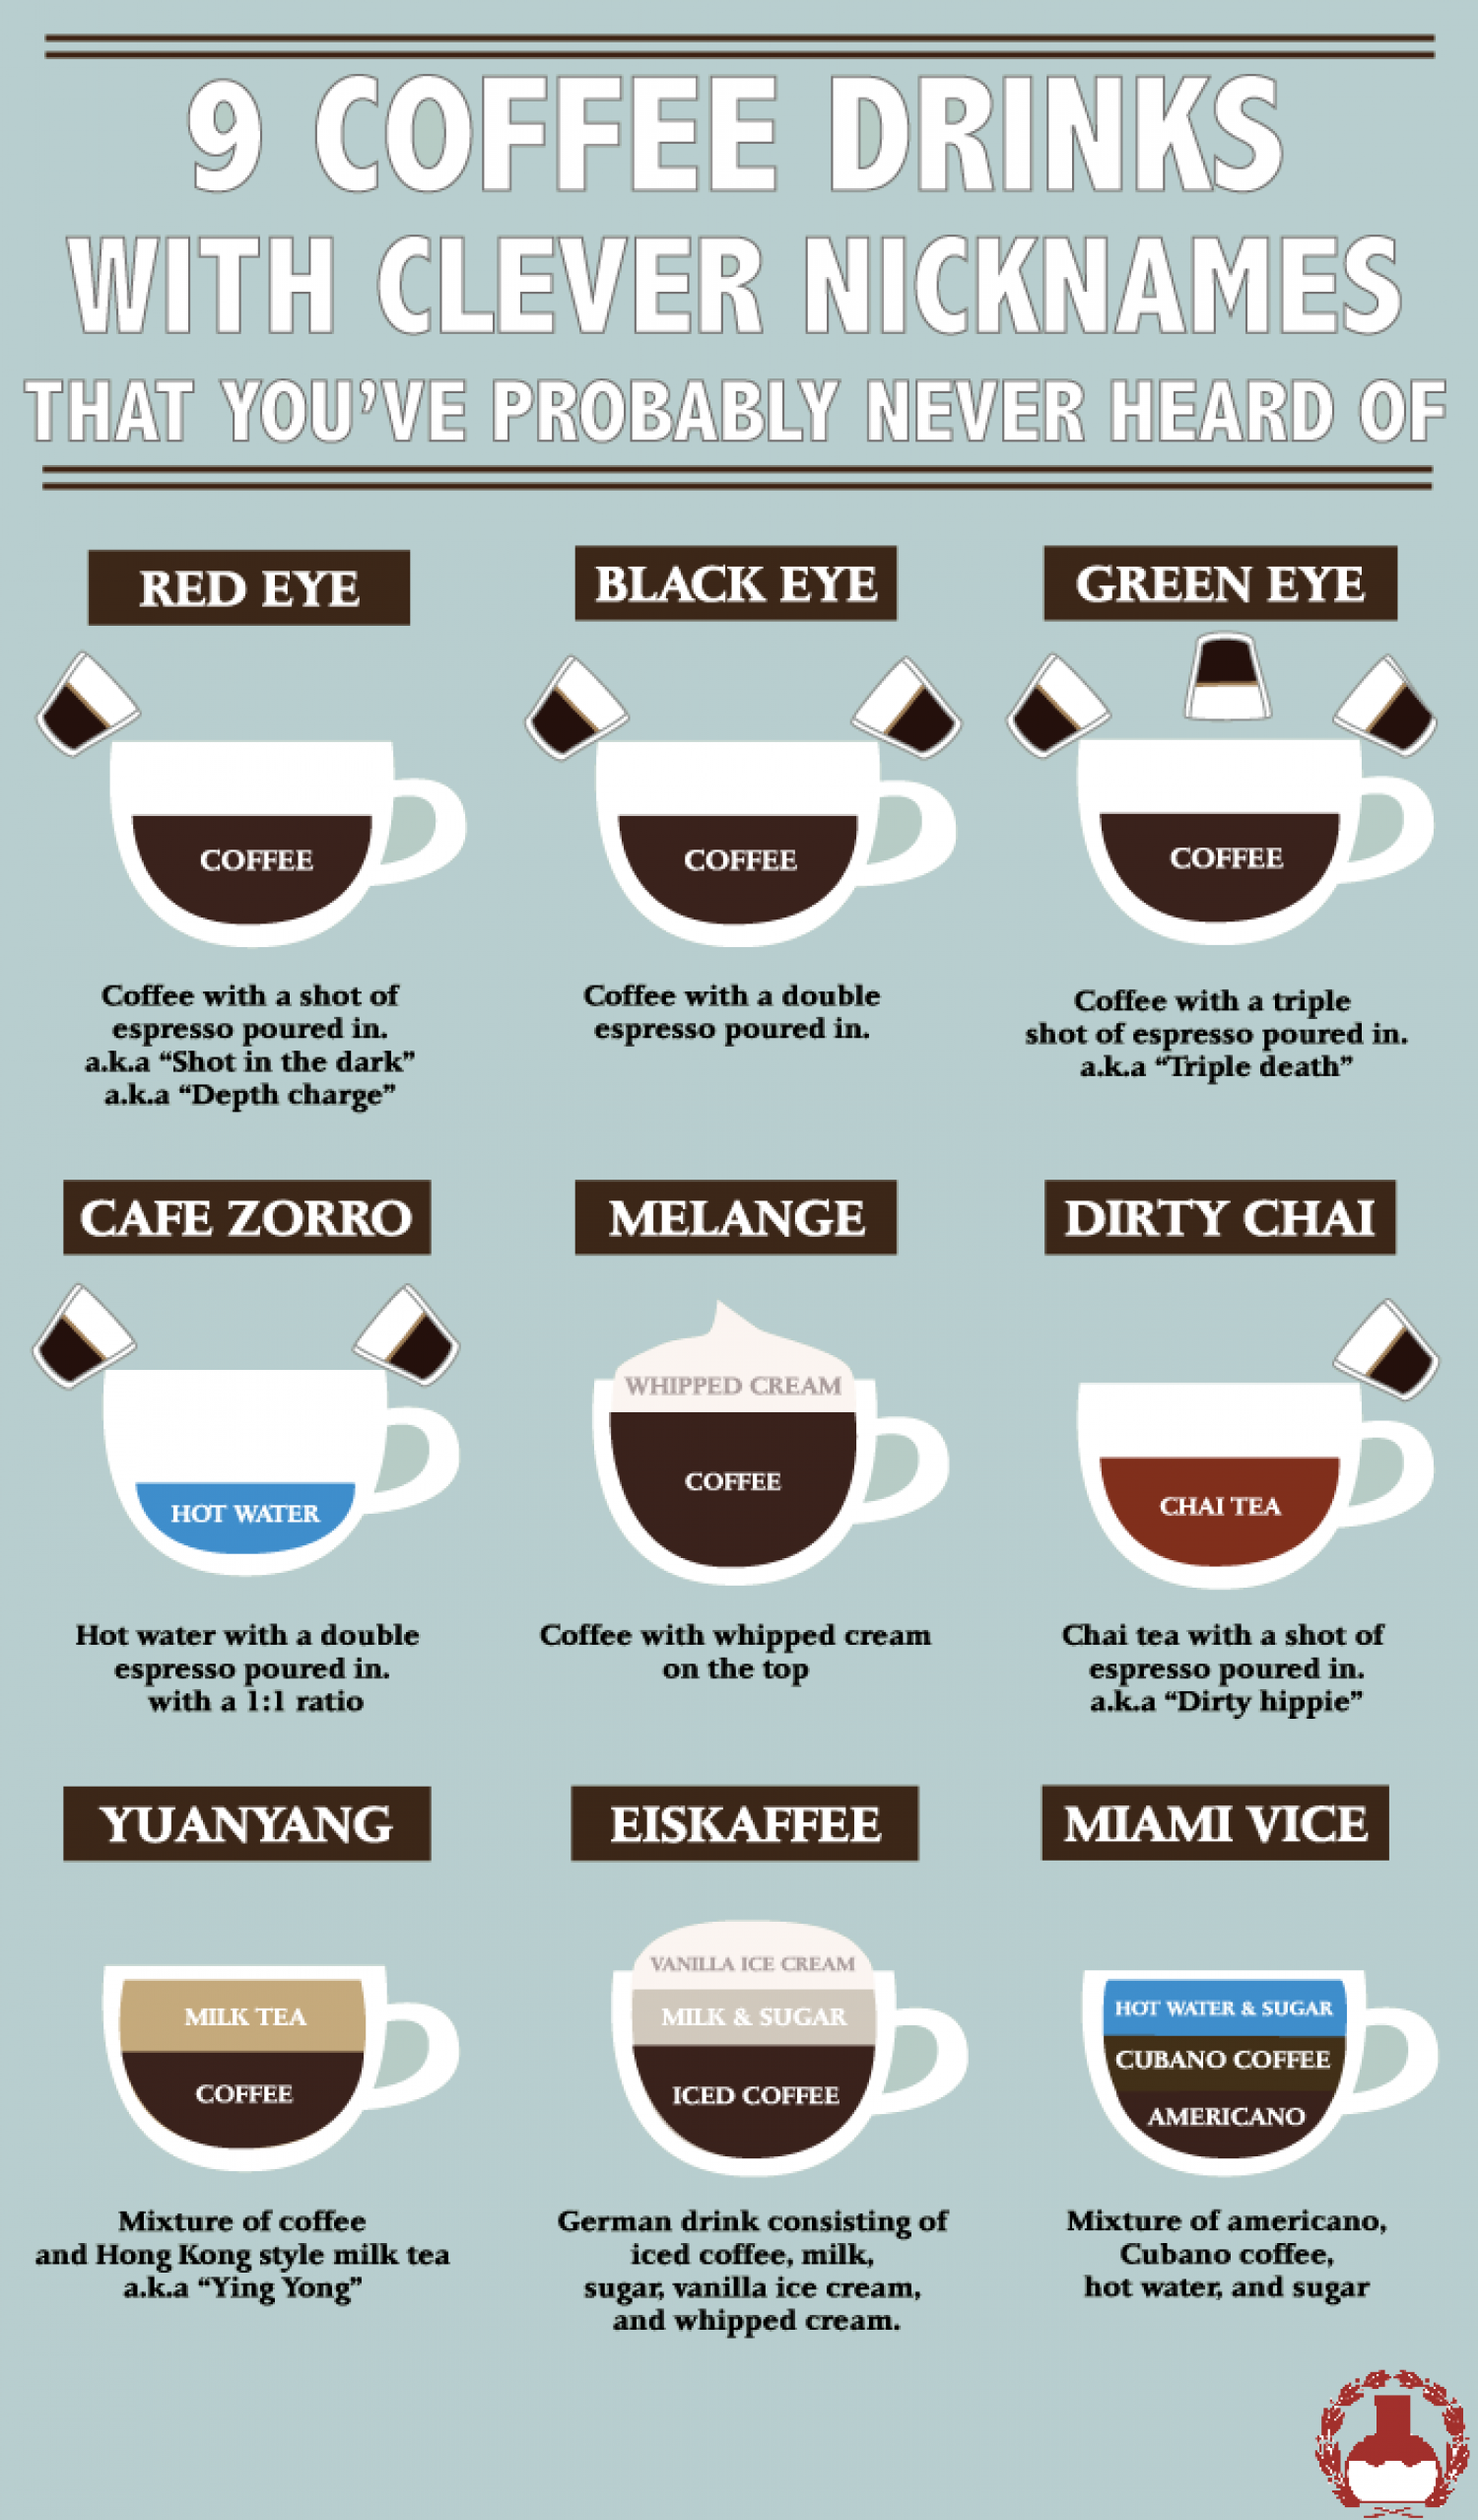 Coffee Recipes for Different Flavours Infographic